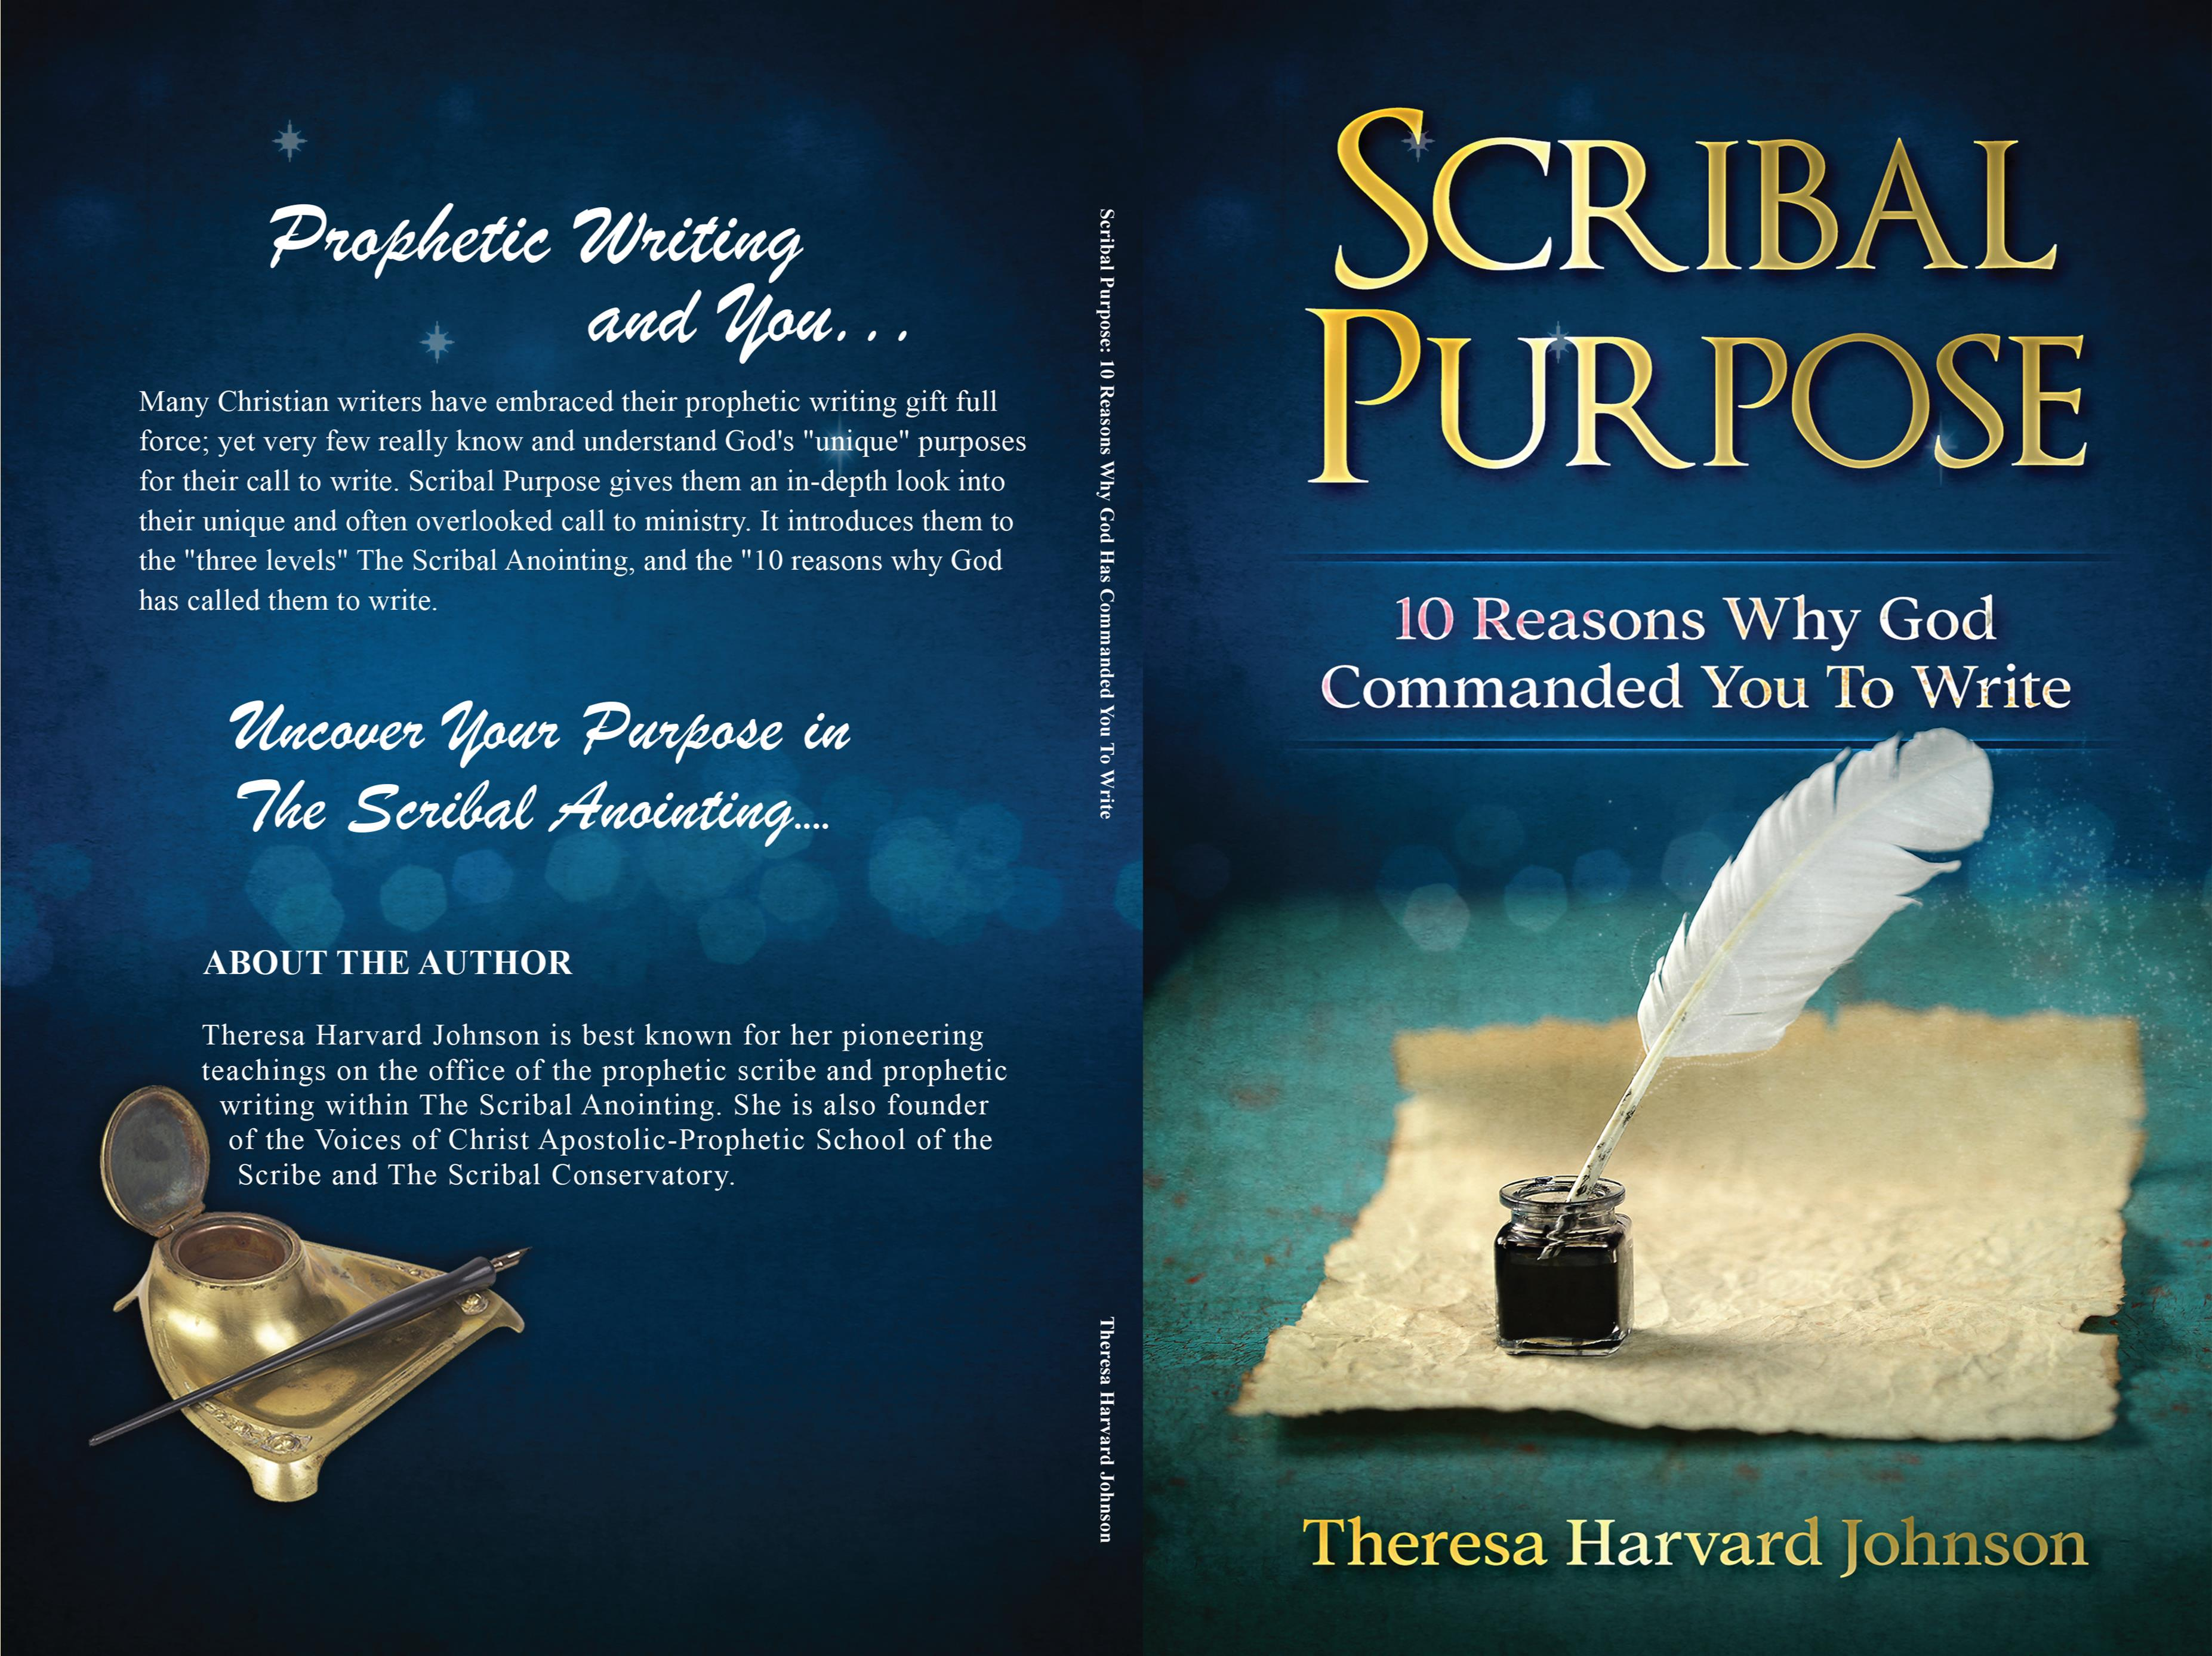 Scribal Purpose: 10 Reasons Why God Has Commanded You To Write by